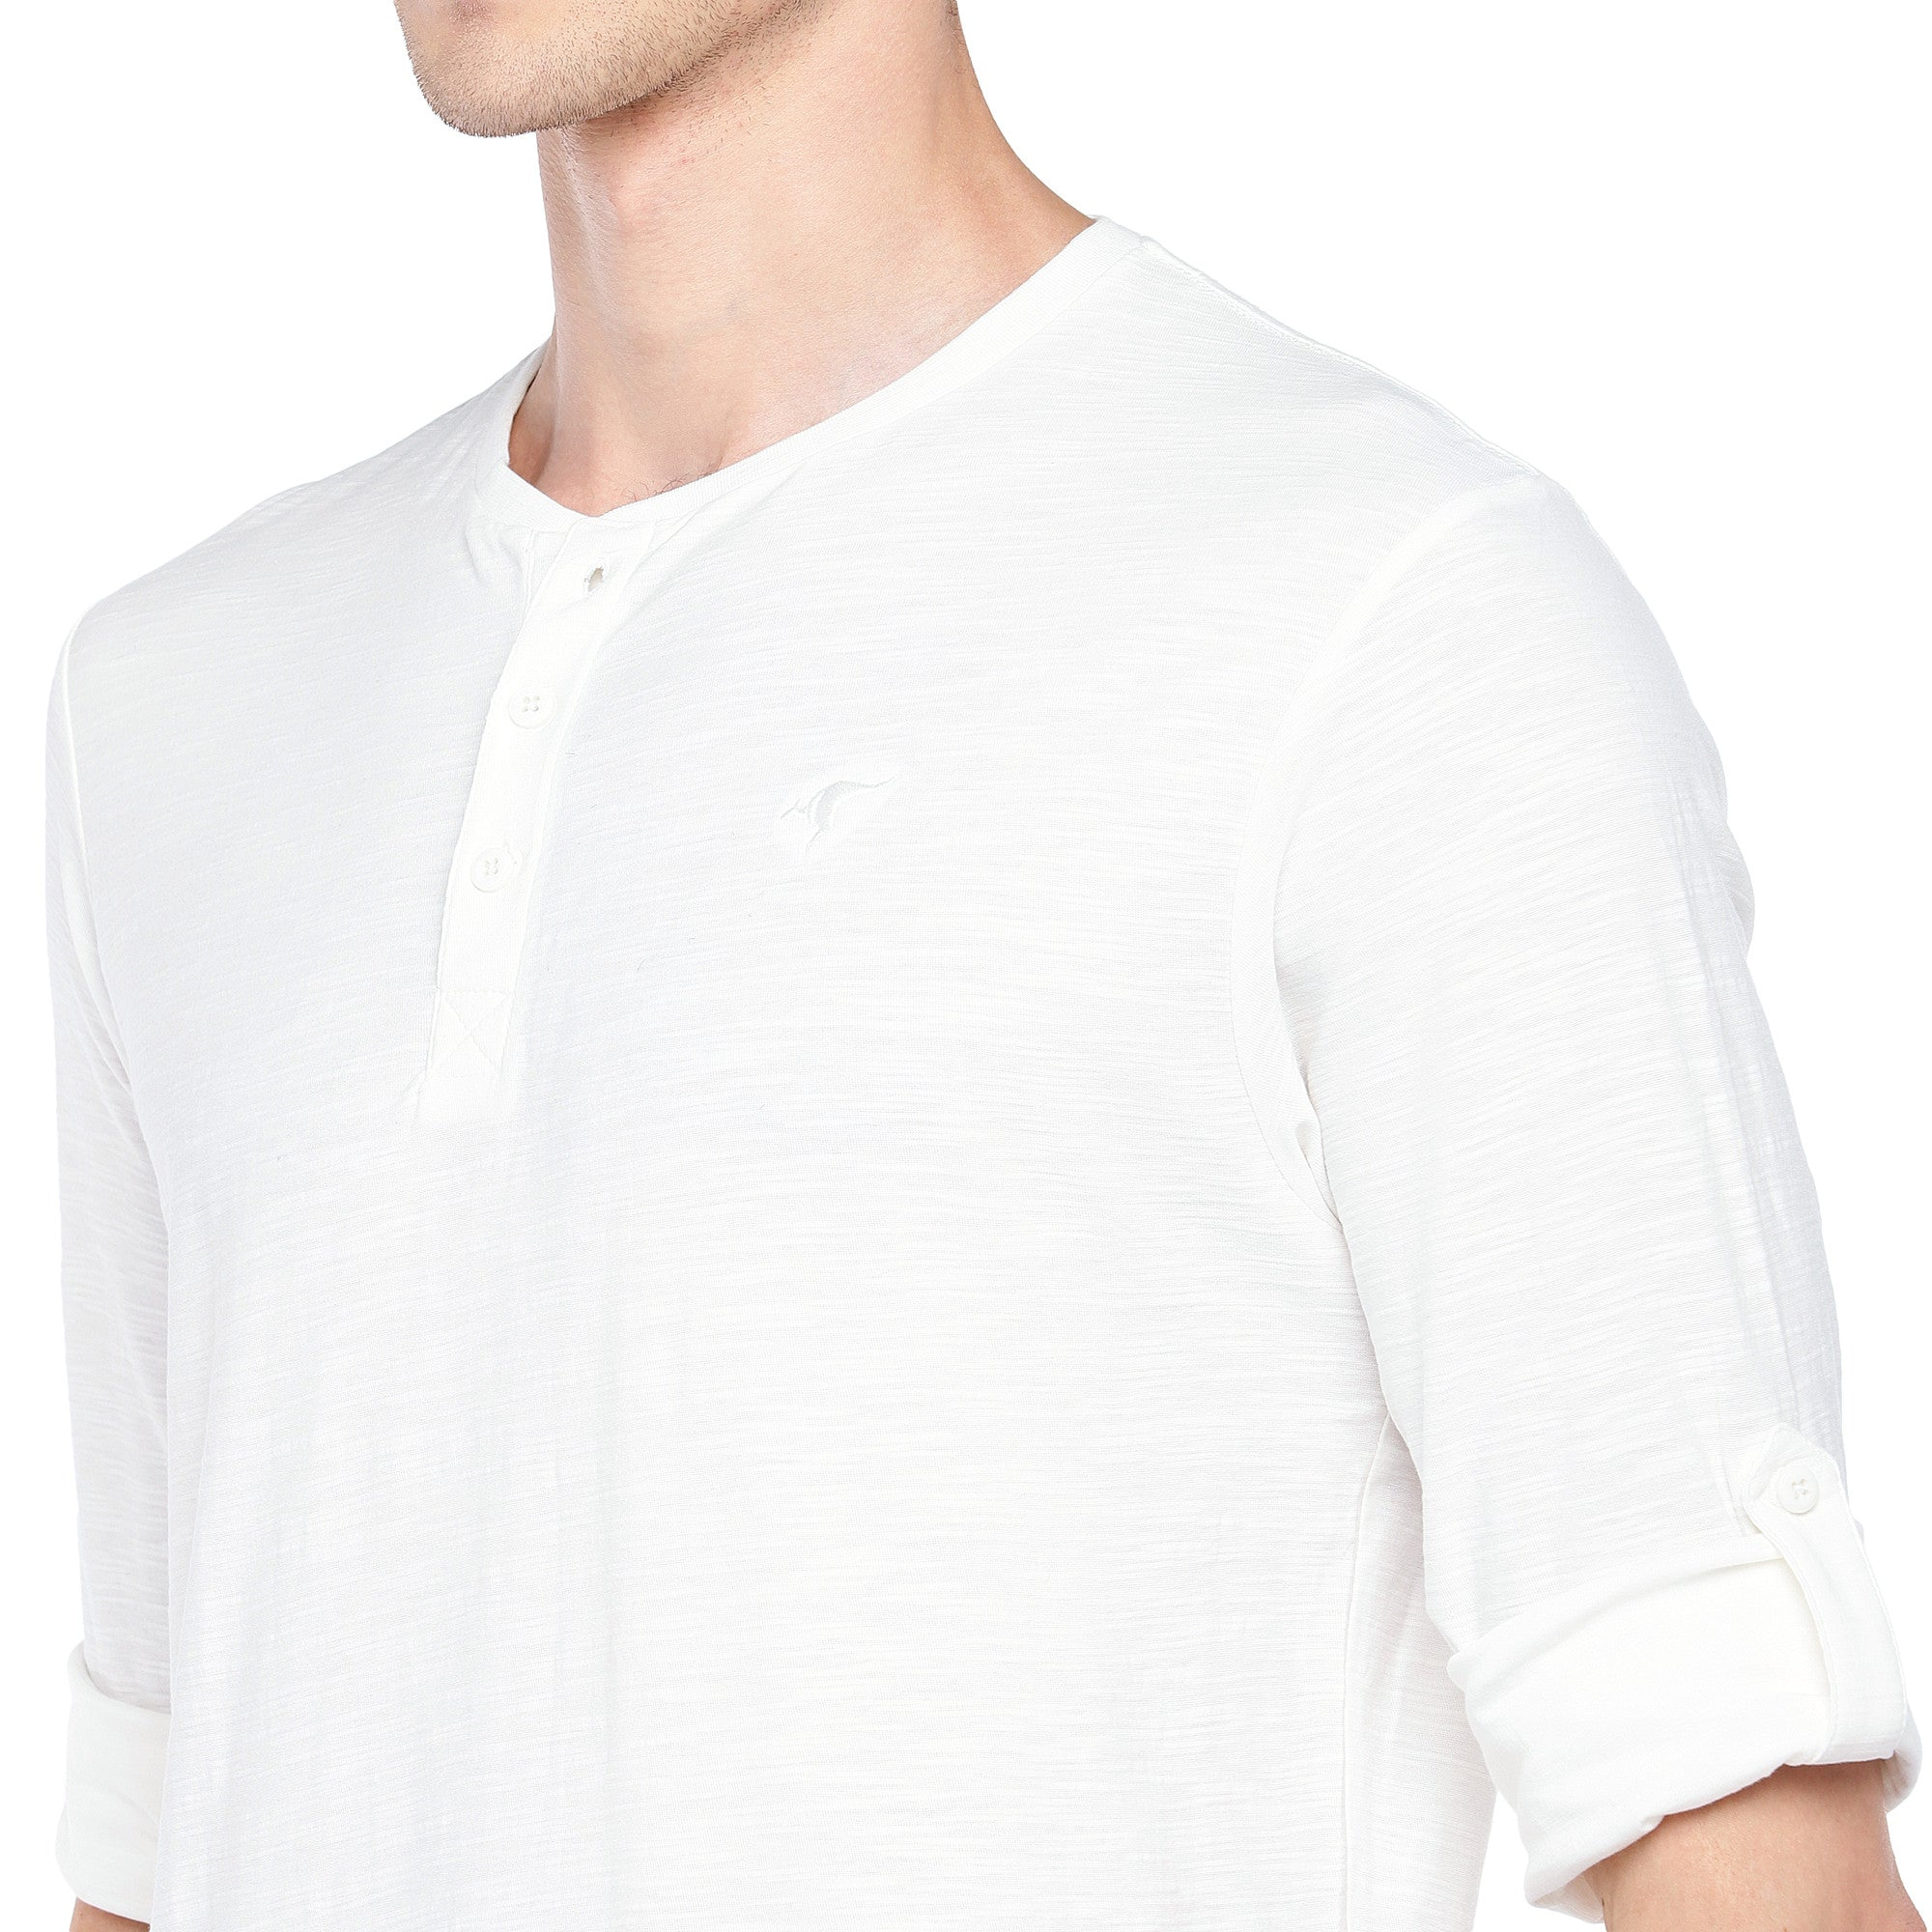 White Solid Henley Neck T-shirt-5